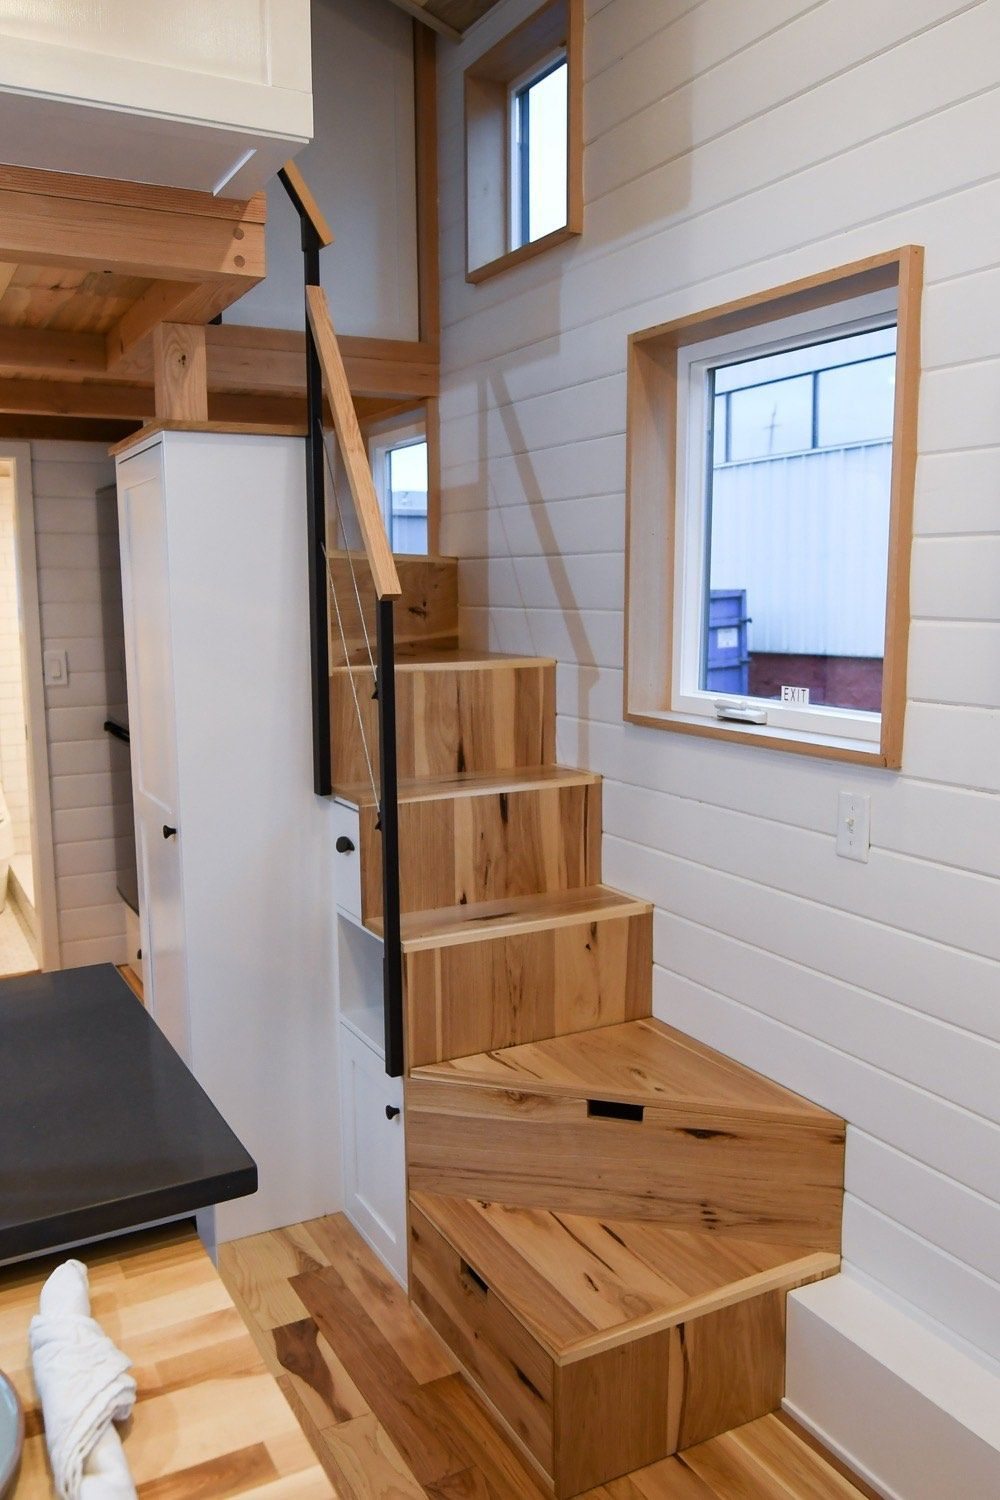 This Is A 28 Kootenay Tiny House On Wheels Built For A